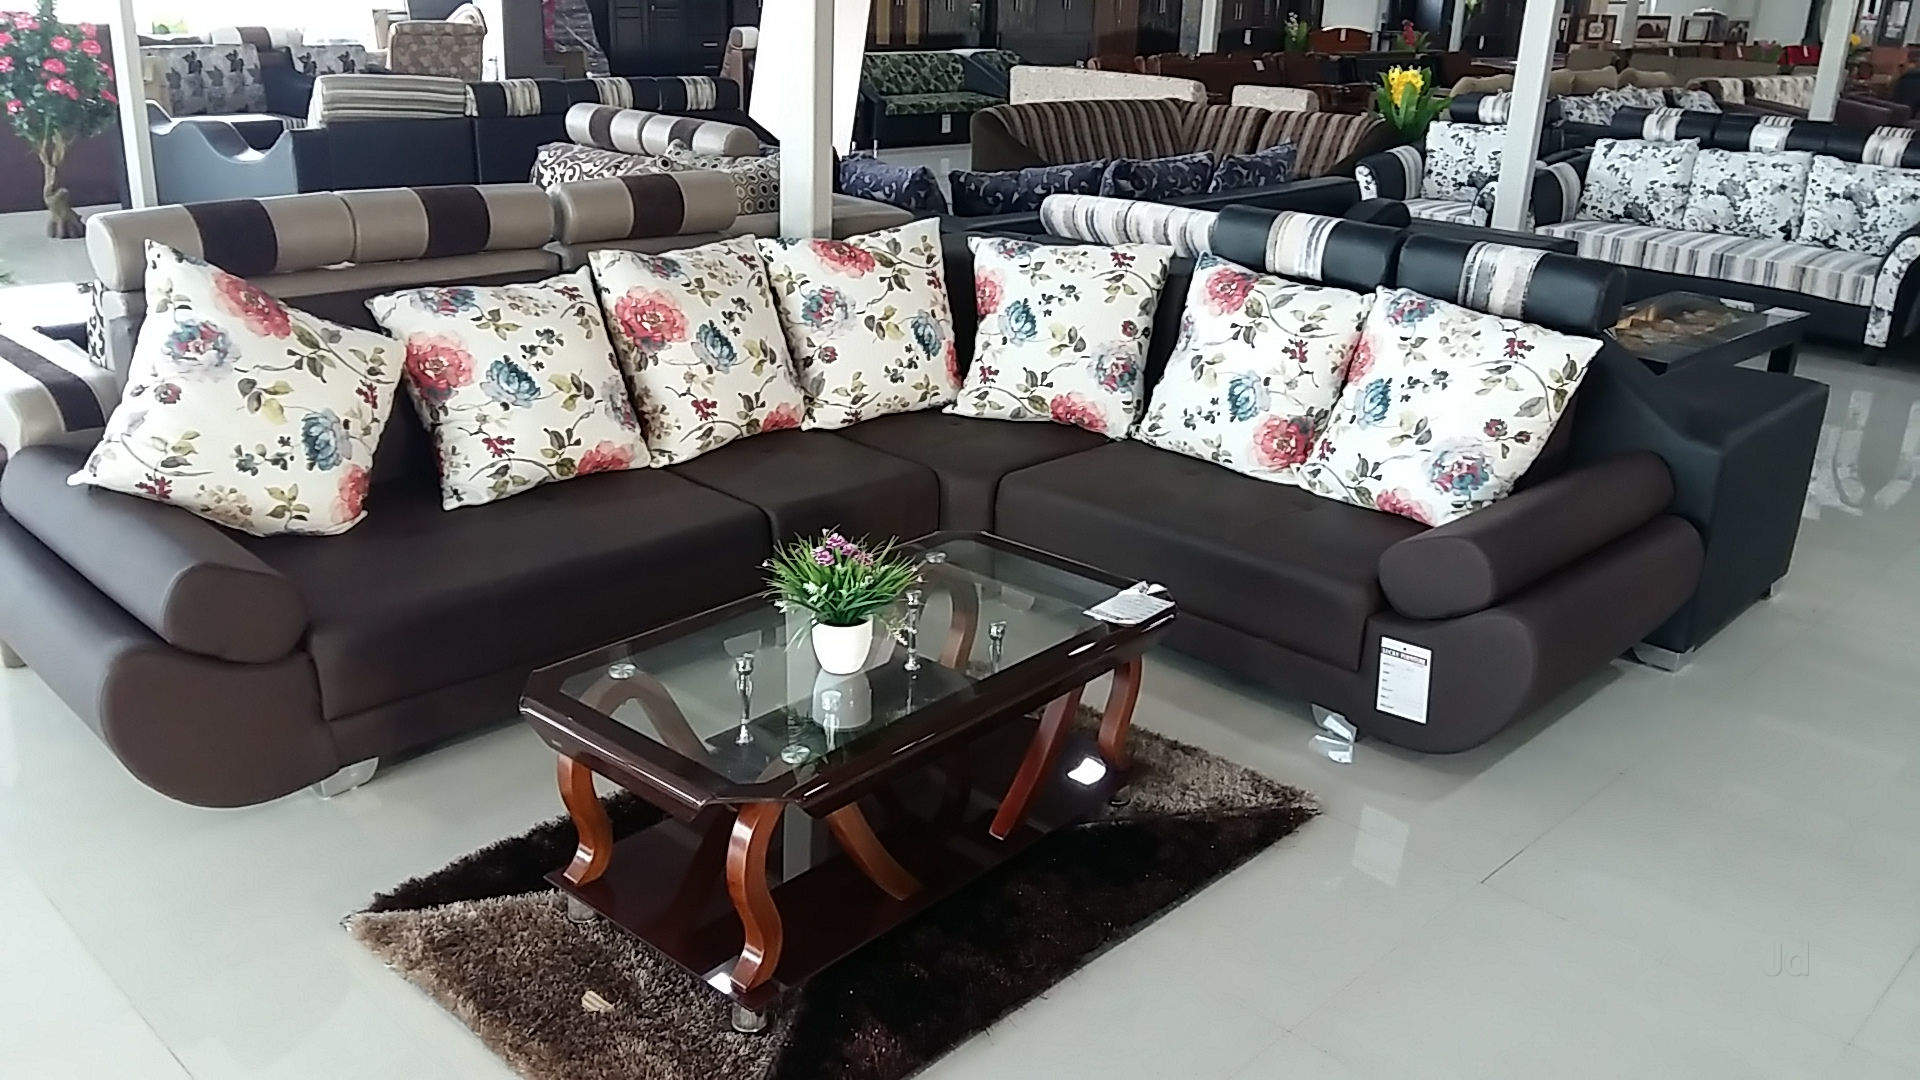 Lucky Funriture Mall - Customized Furniture Manufacturer in Kolhapur